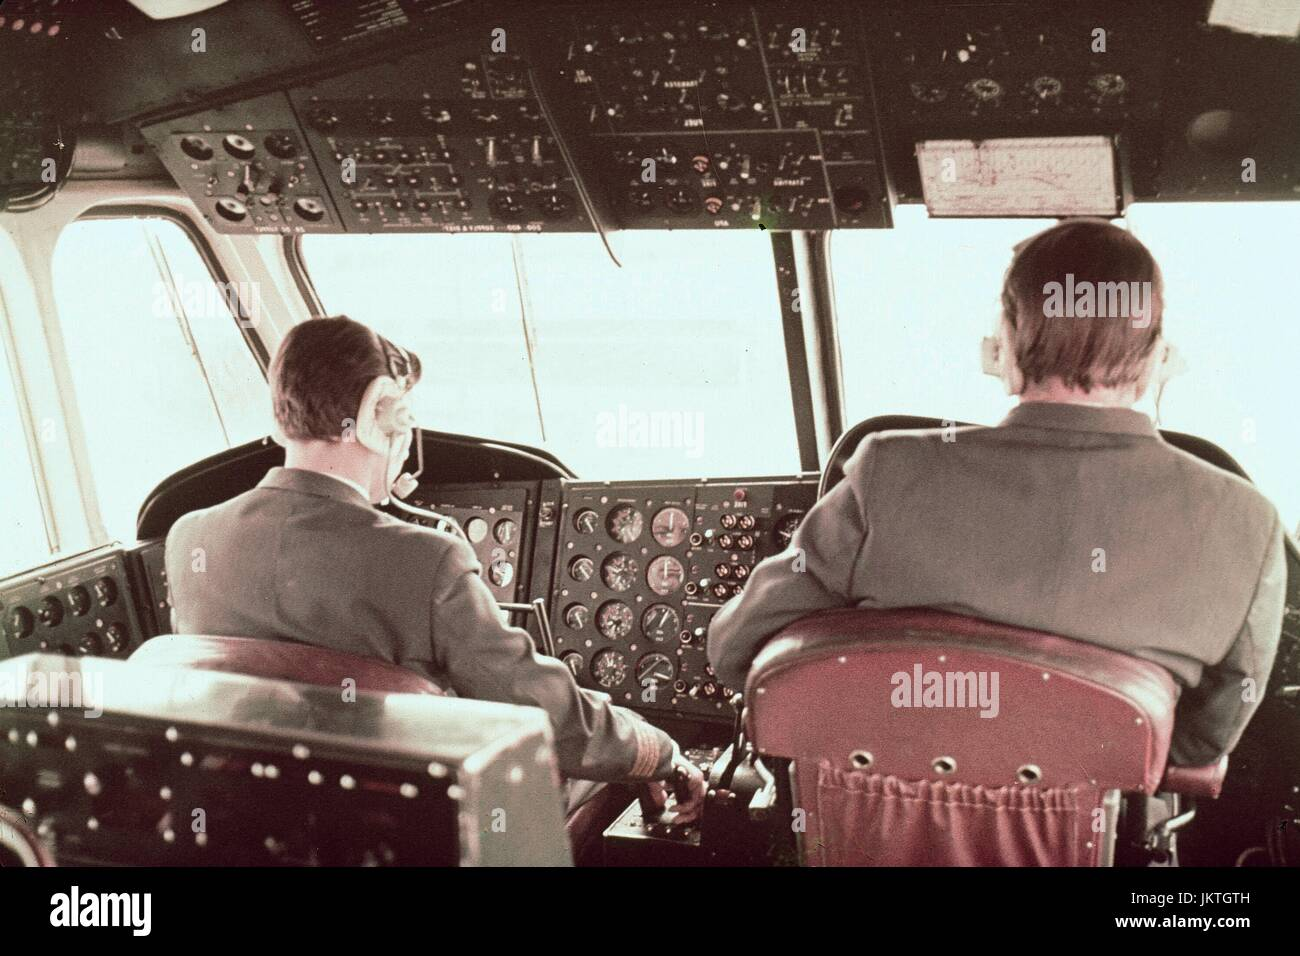 Two formally-dressed pilots wearing communications headsets sit in the cockpit of a passenger airplane, with one Stock Photo